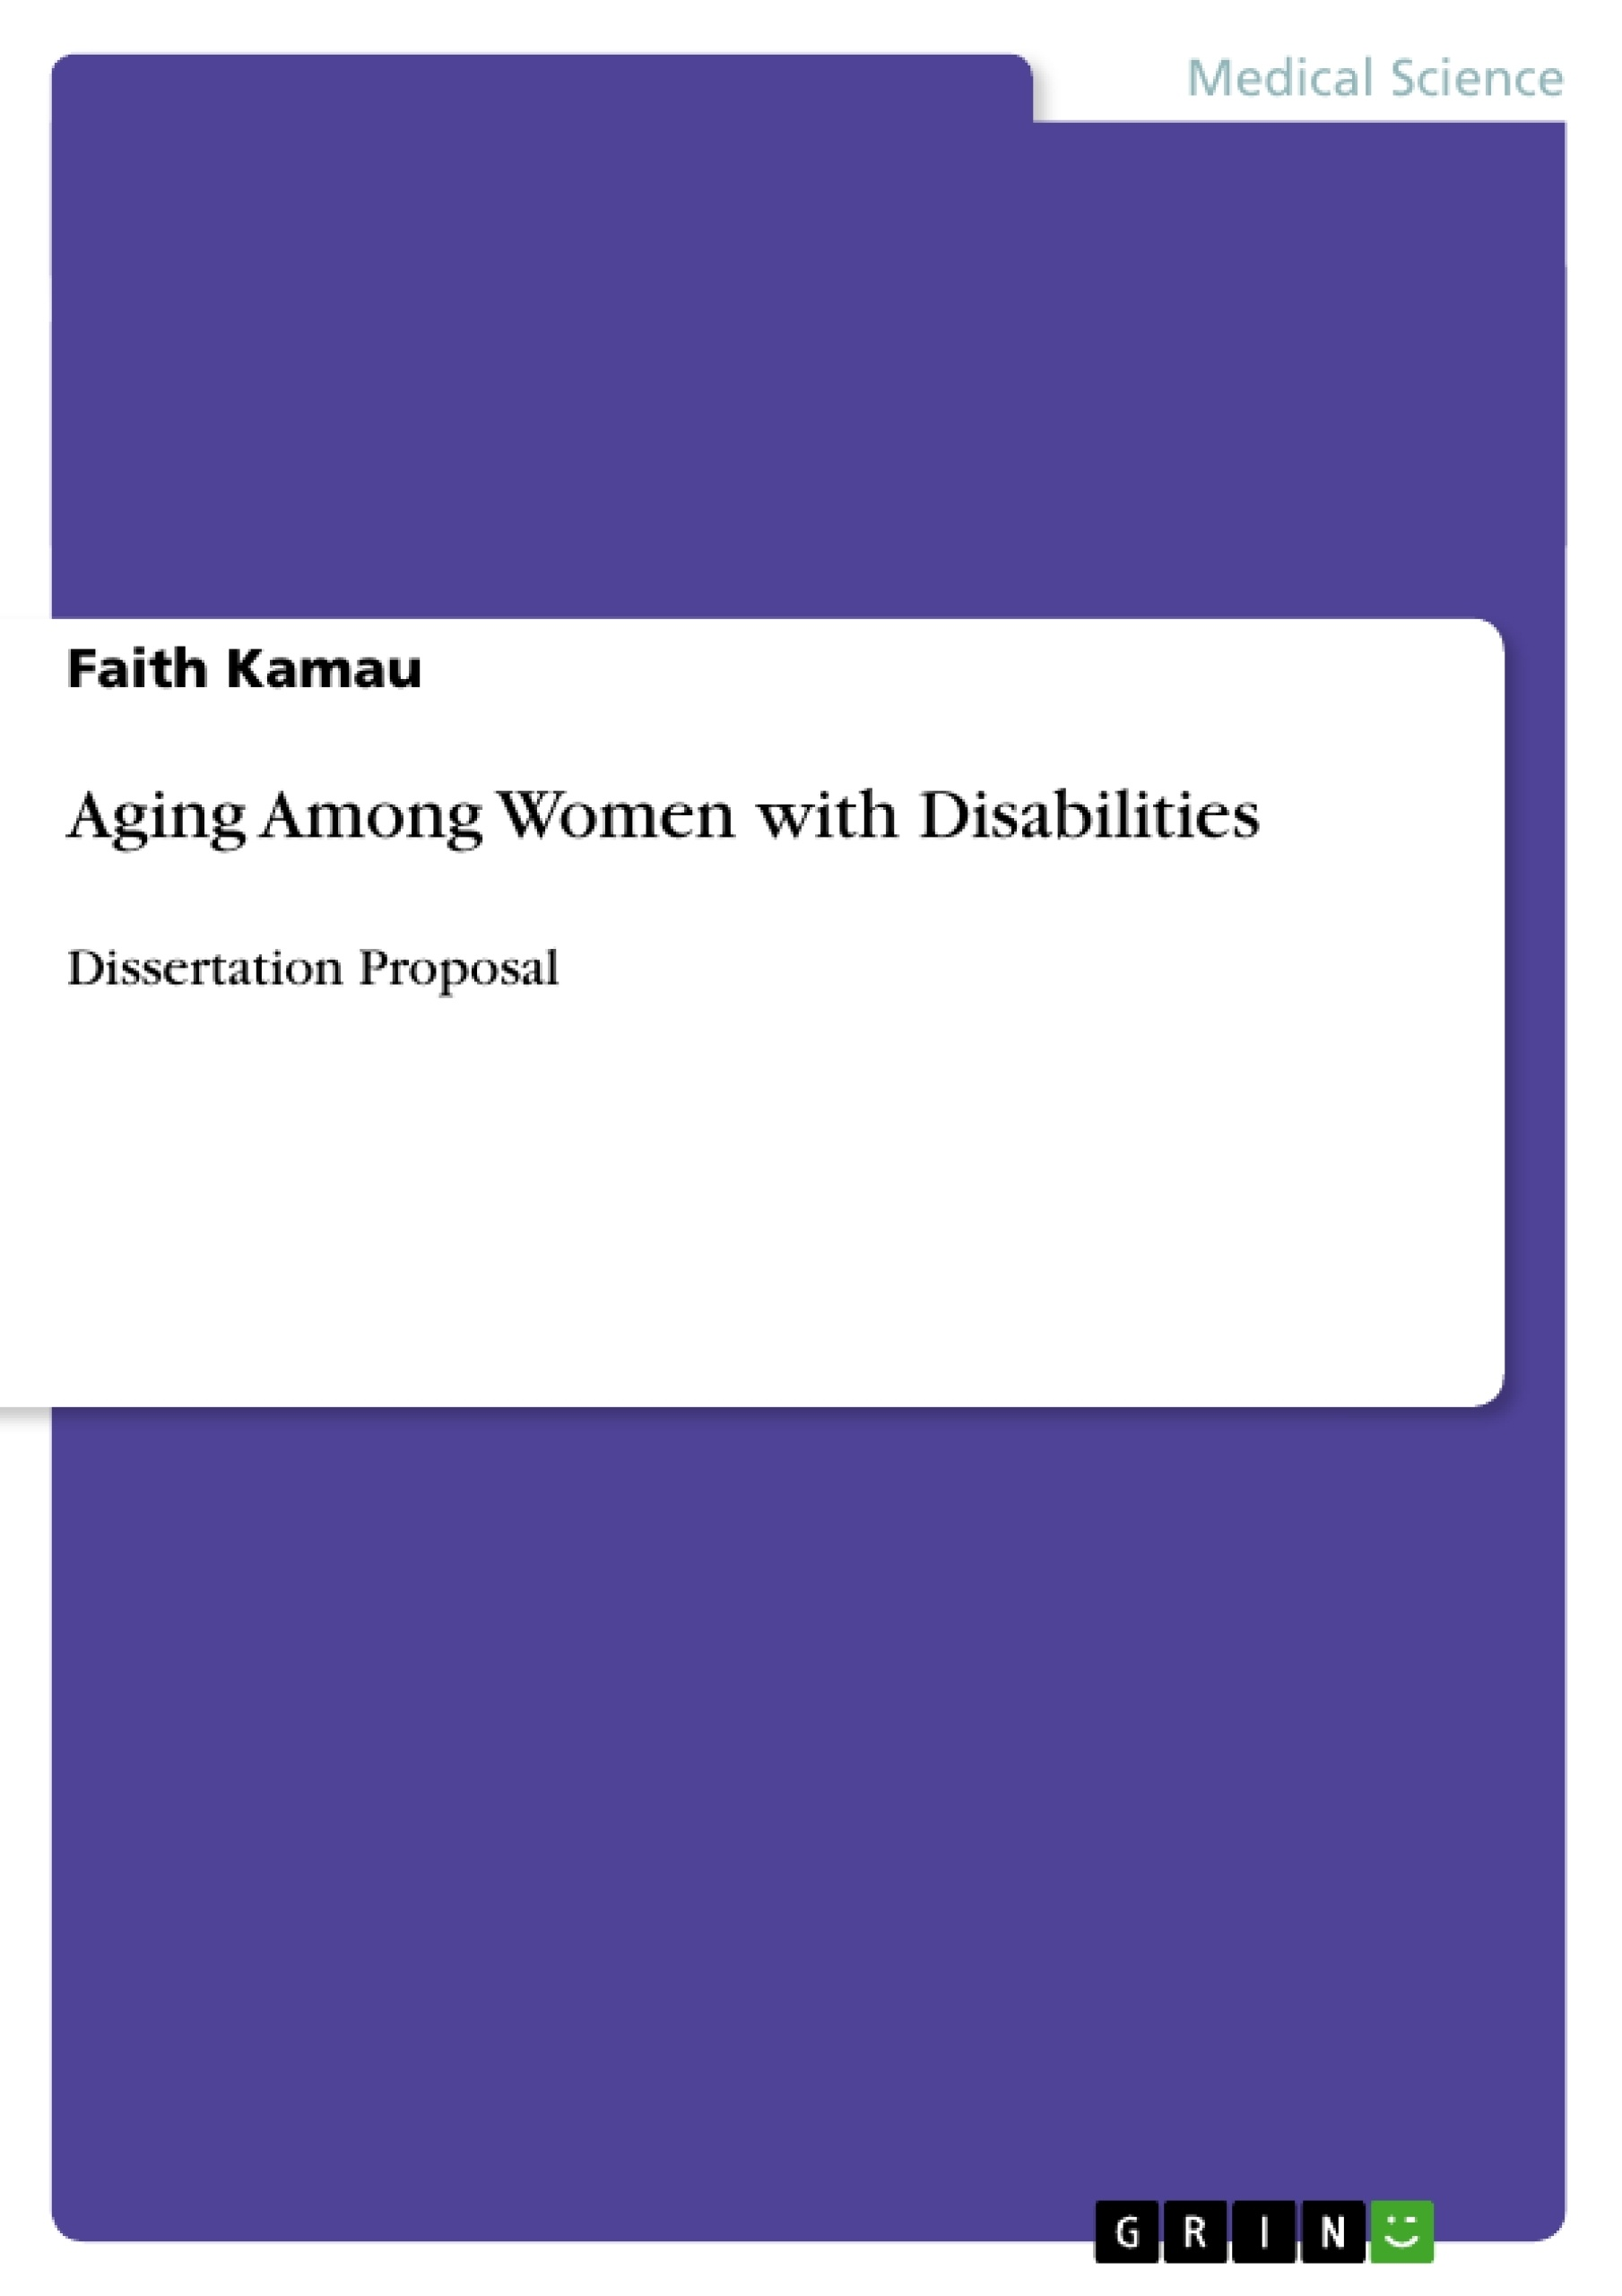 Title: Aging Among Women with Disabilities